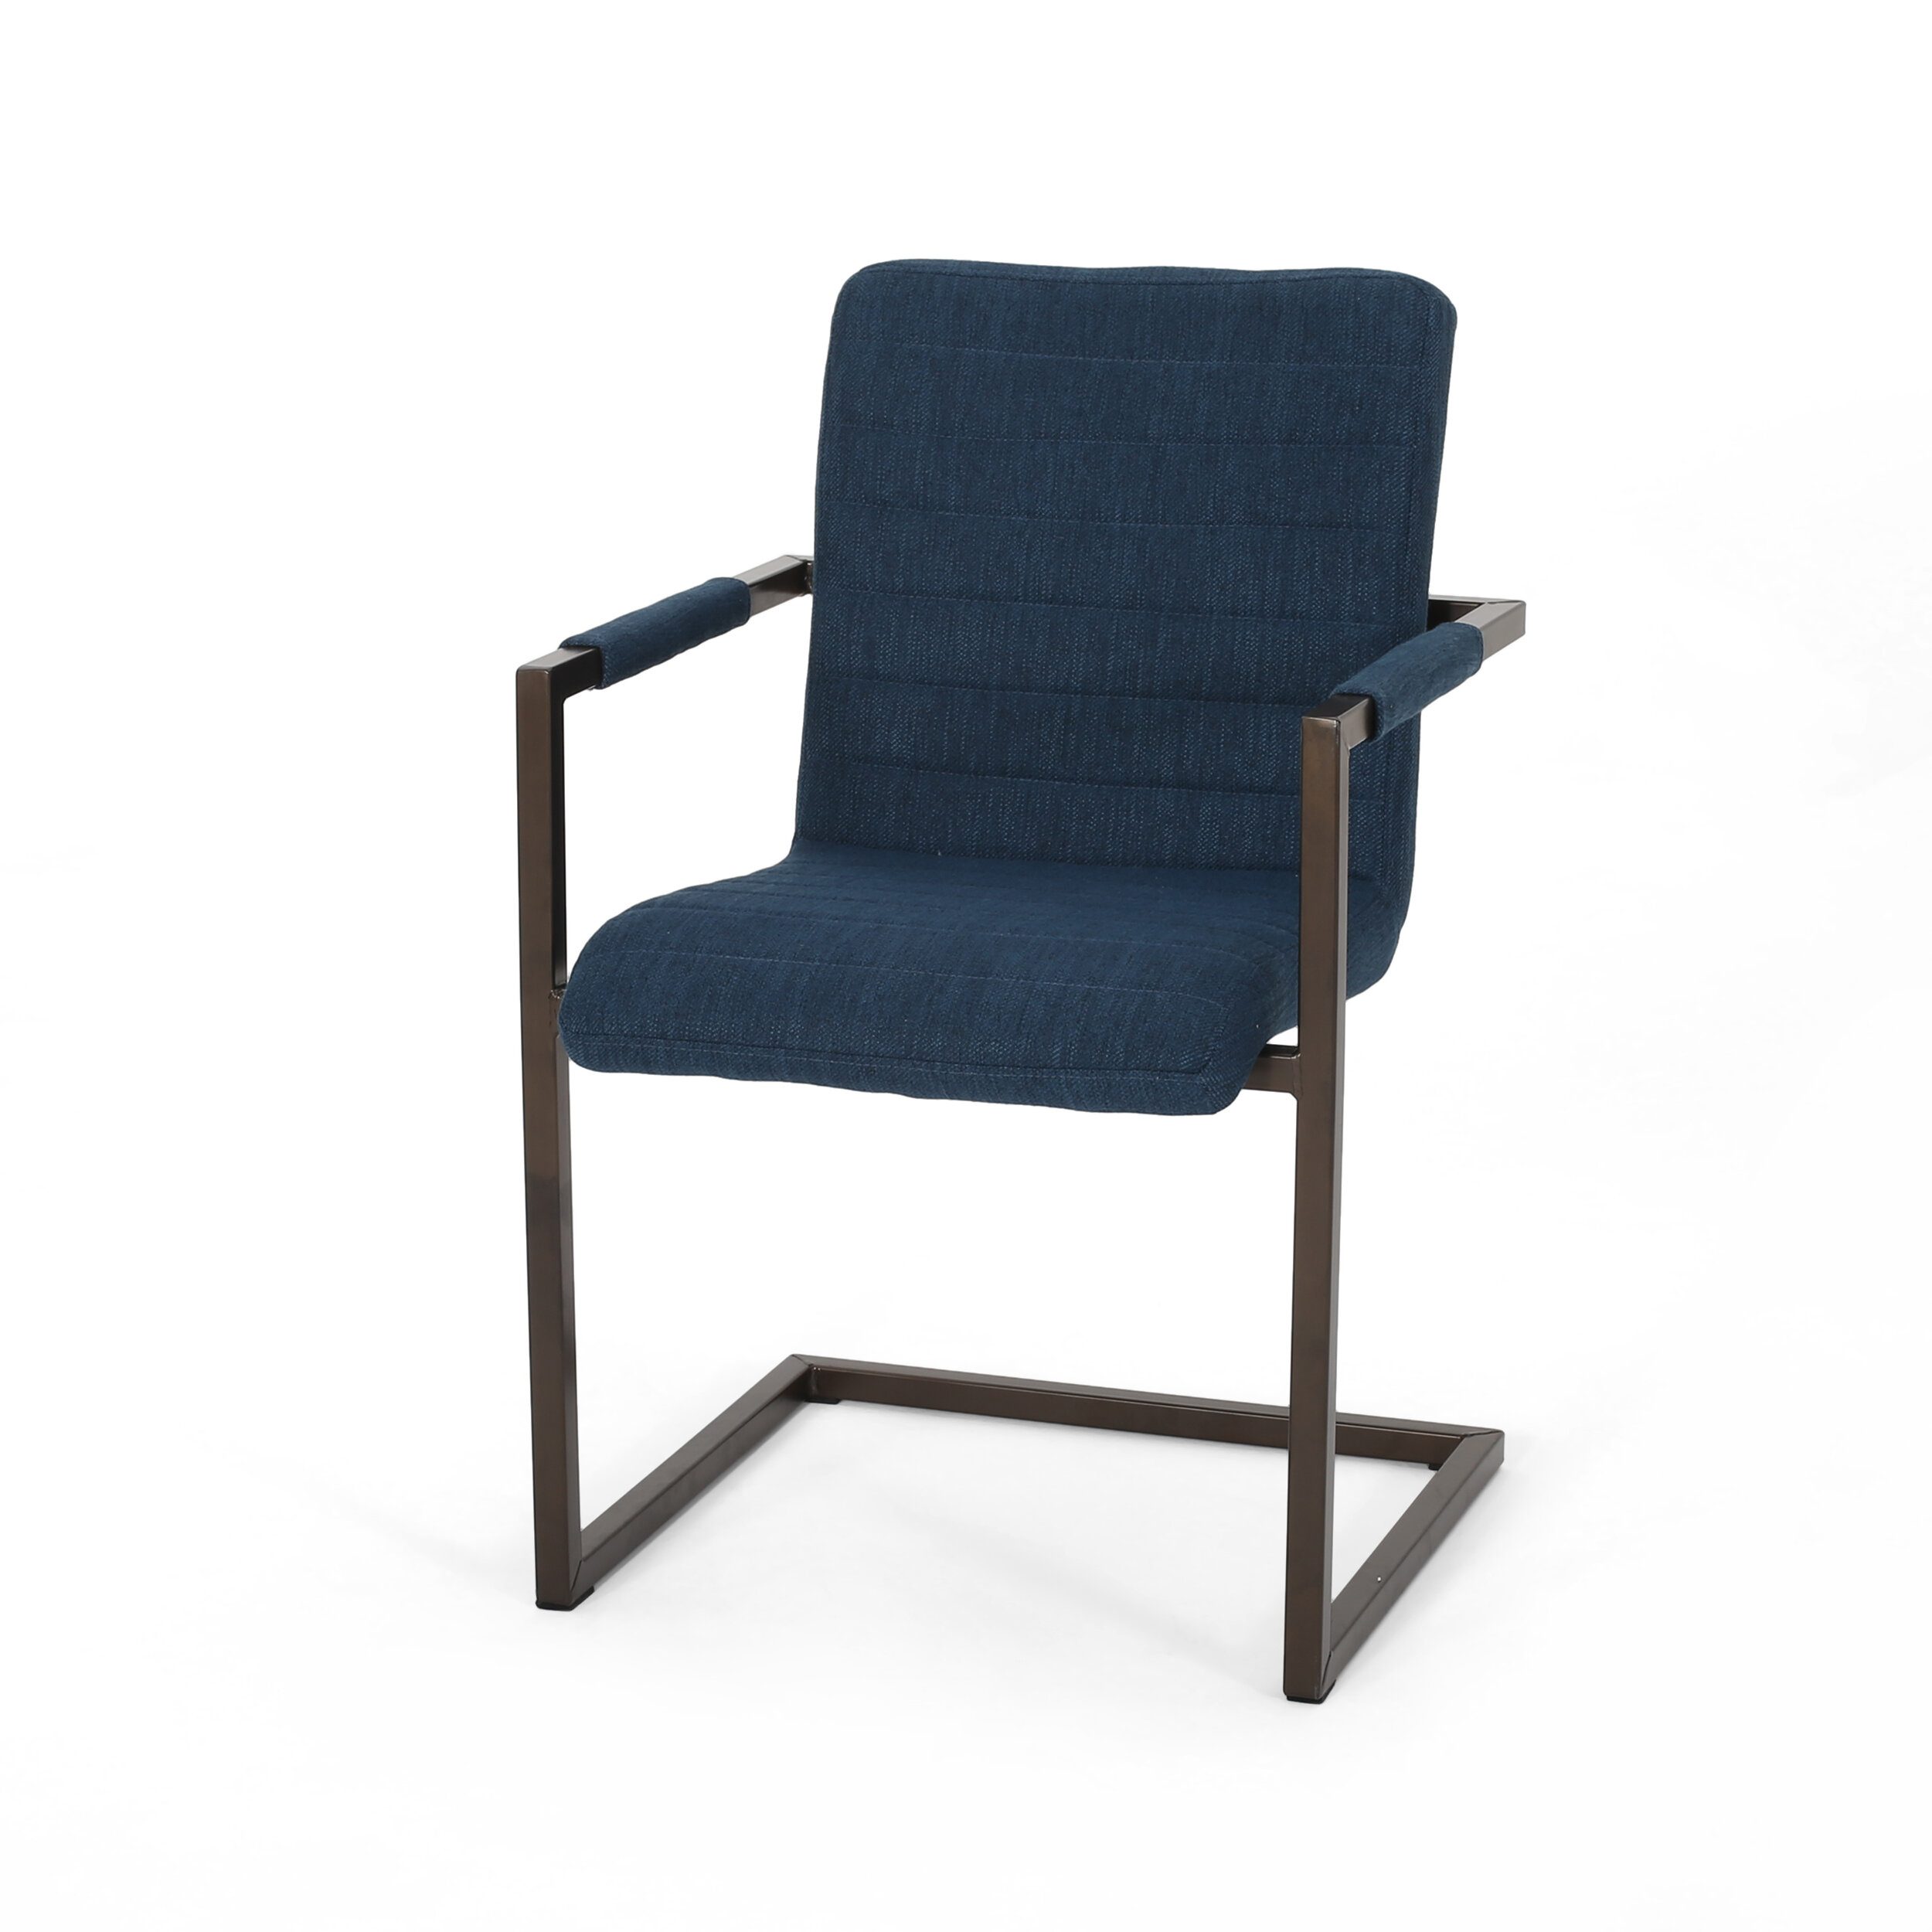 Espresso Ivy Bronx Kitchen Dining Chairs You Ll Love In 2021 Wayfair